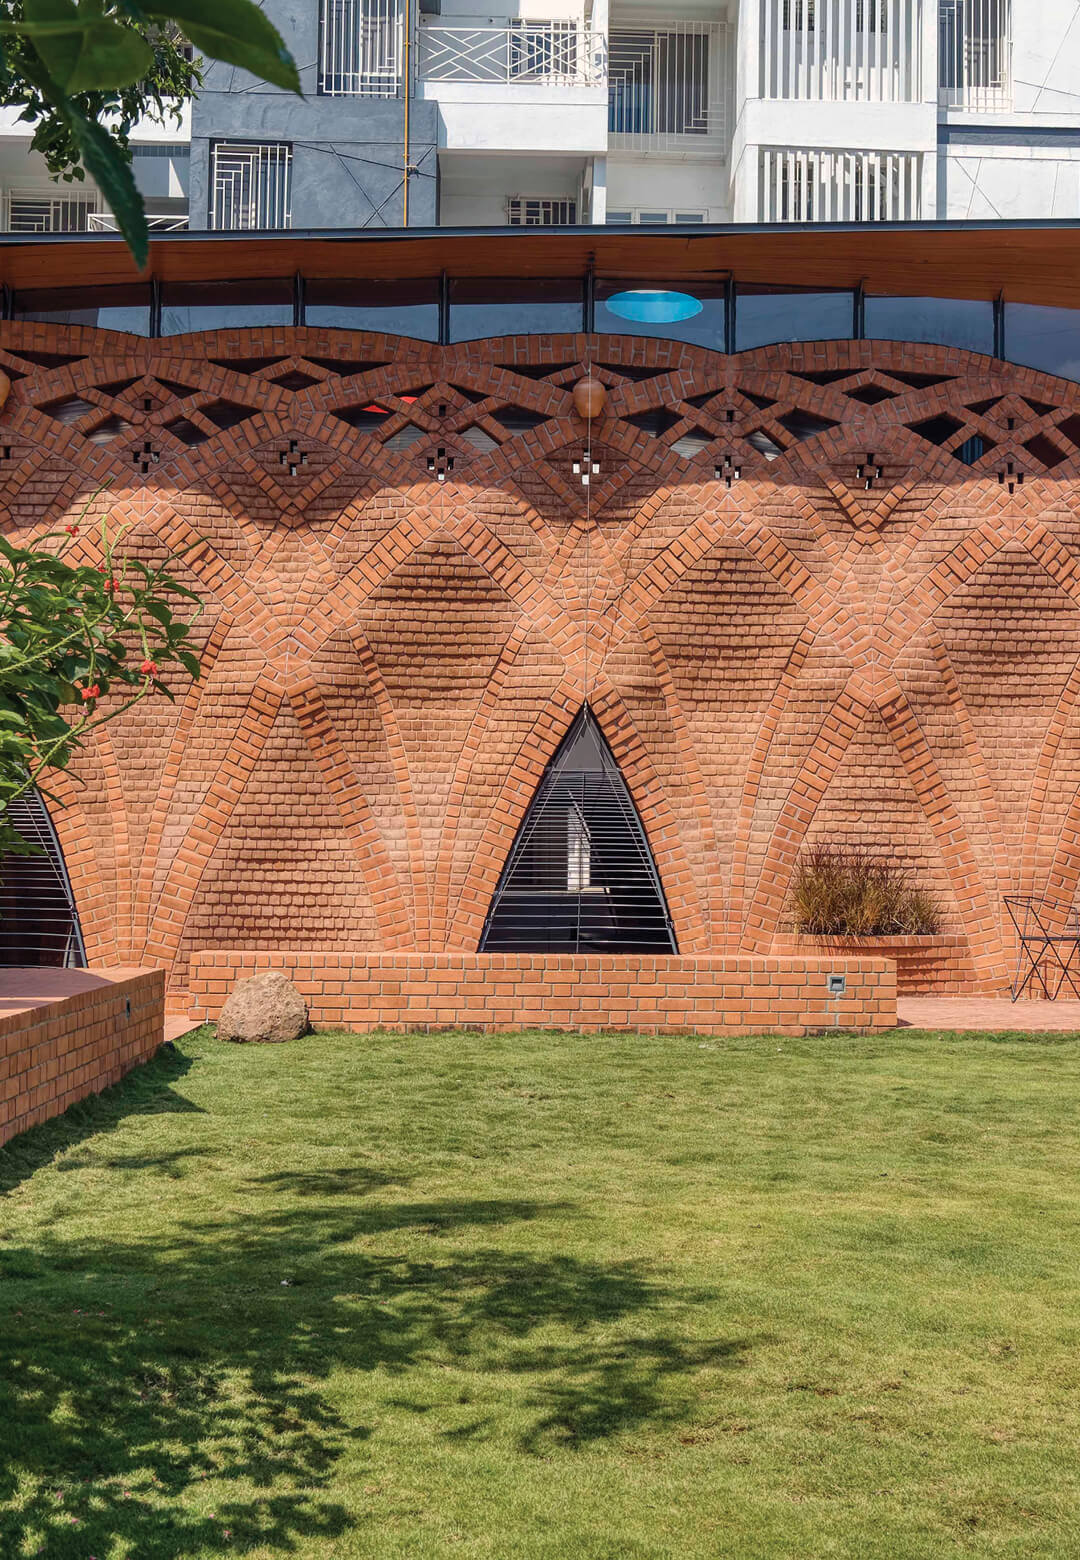 The distinct rippling façade of the Red Oasis designed by Indian architectural and design firm PMA madhushala | The Red Oasis by PMA madhushala | STIRworld